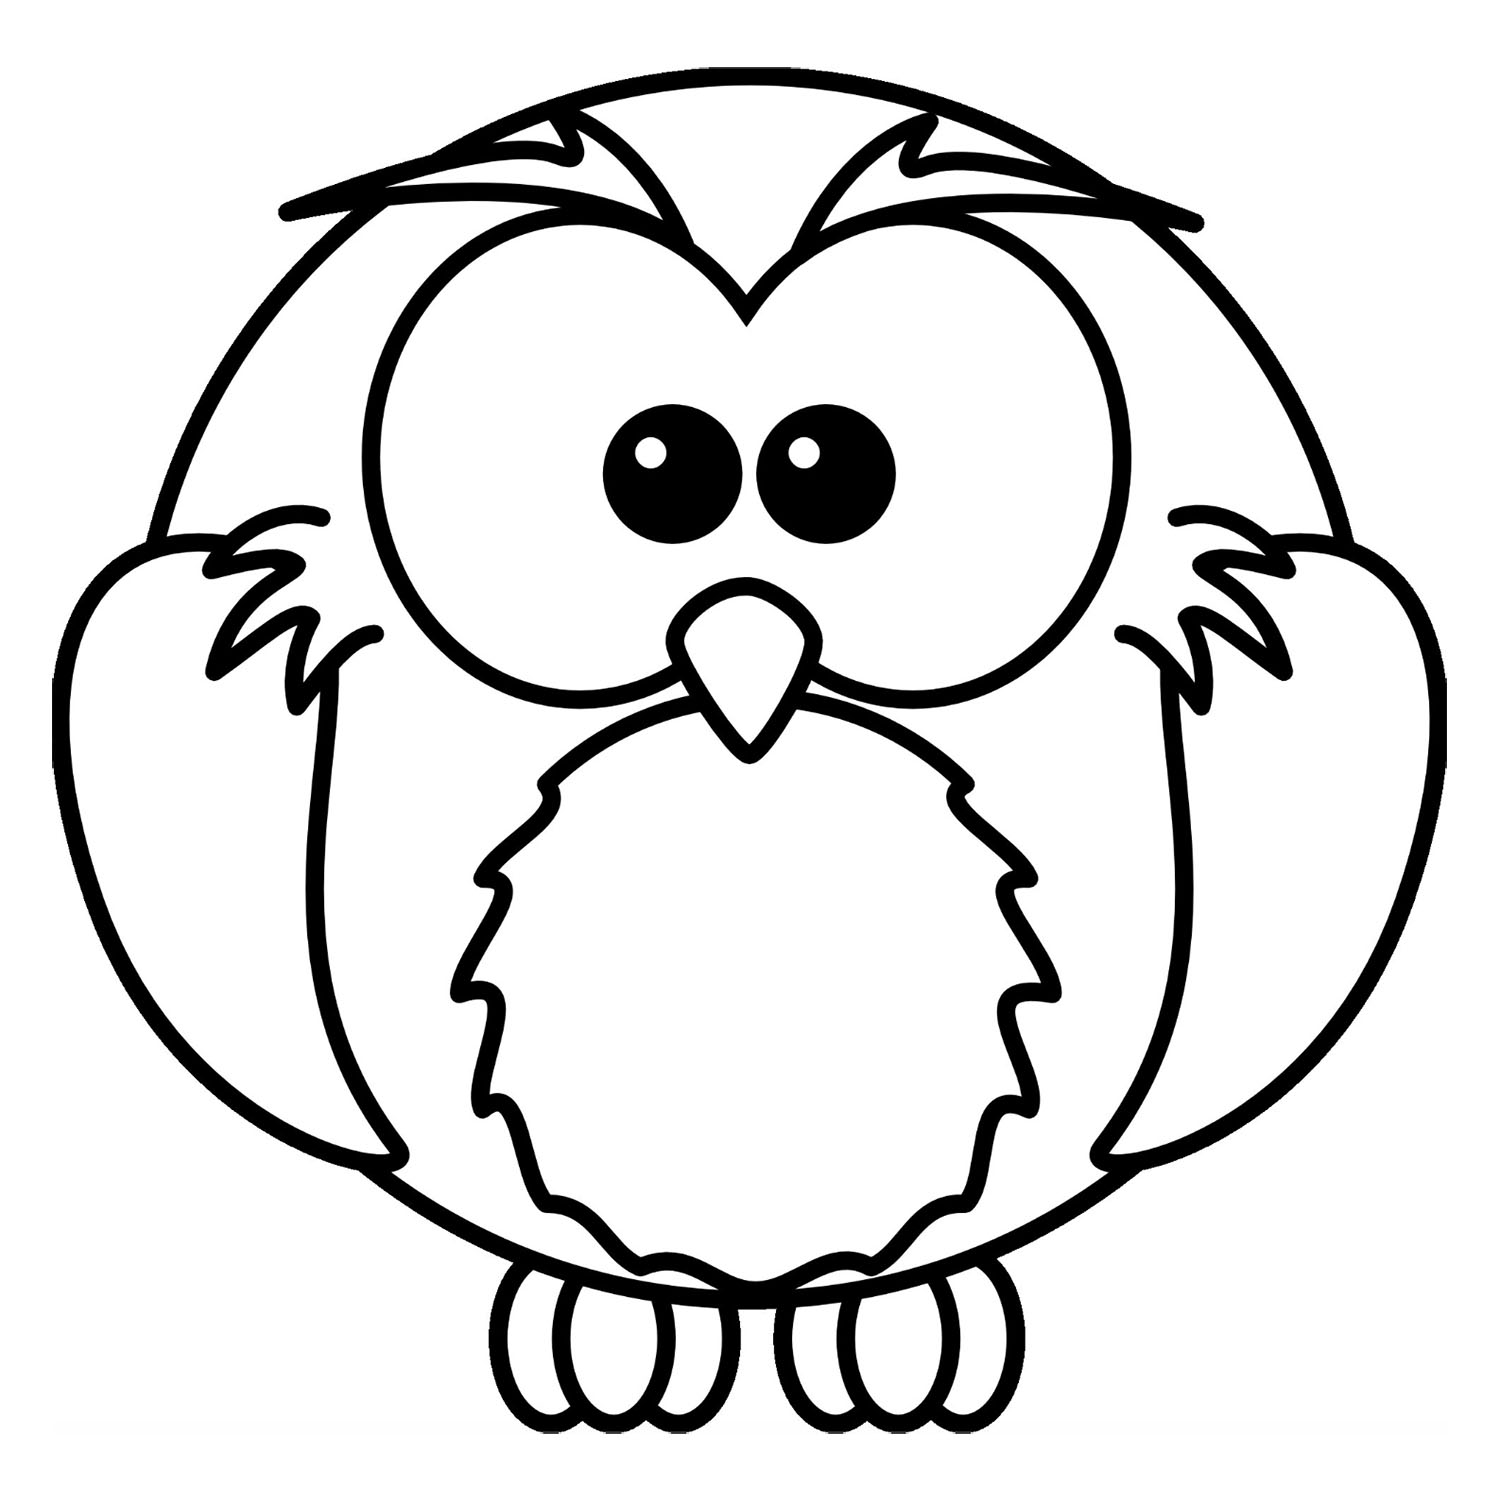 coloring bird for kids bird coloring pages coloring bird for kids